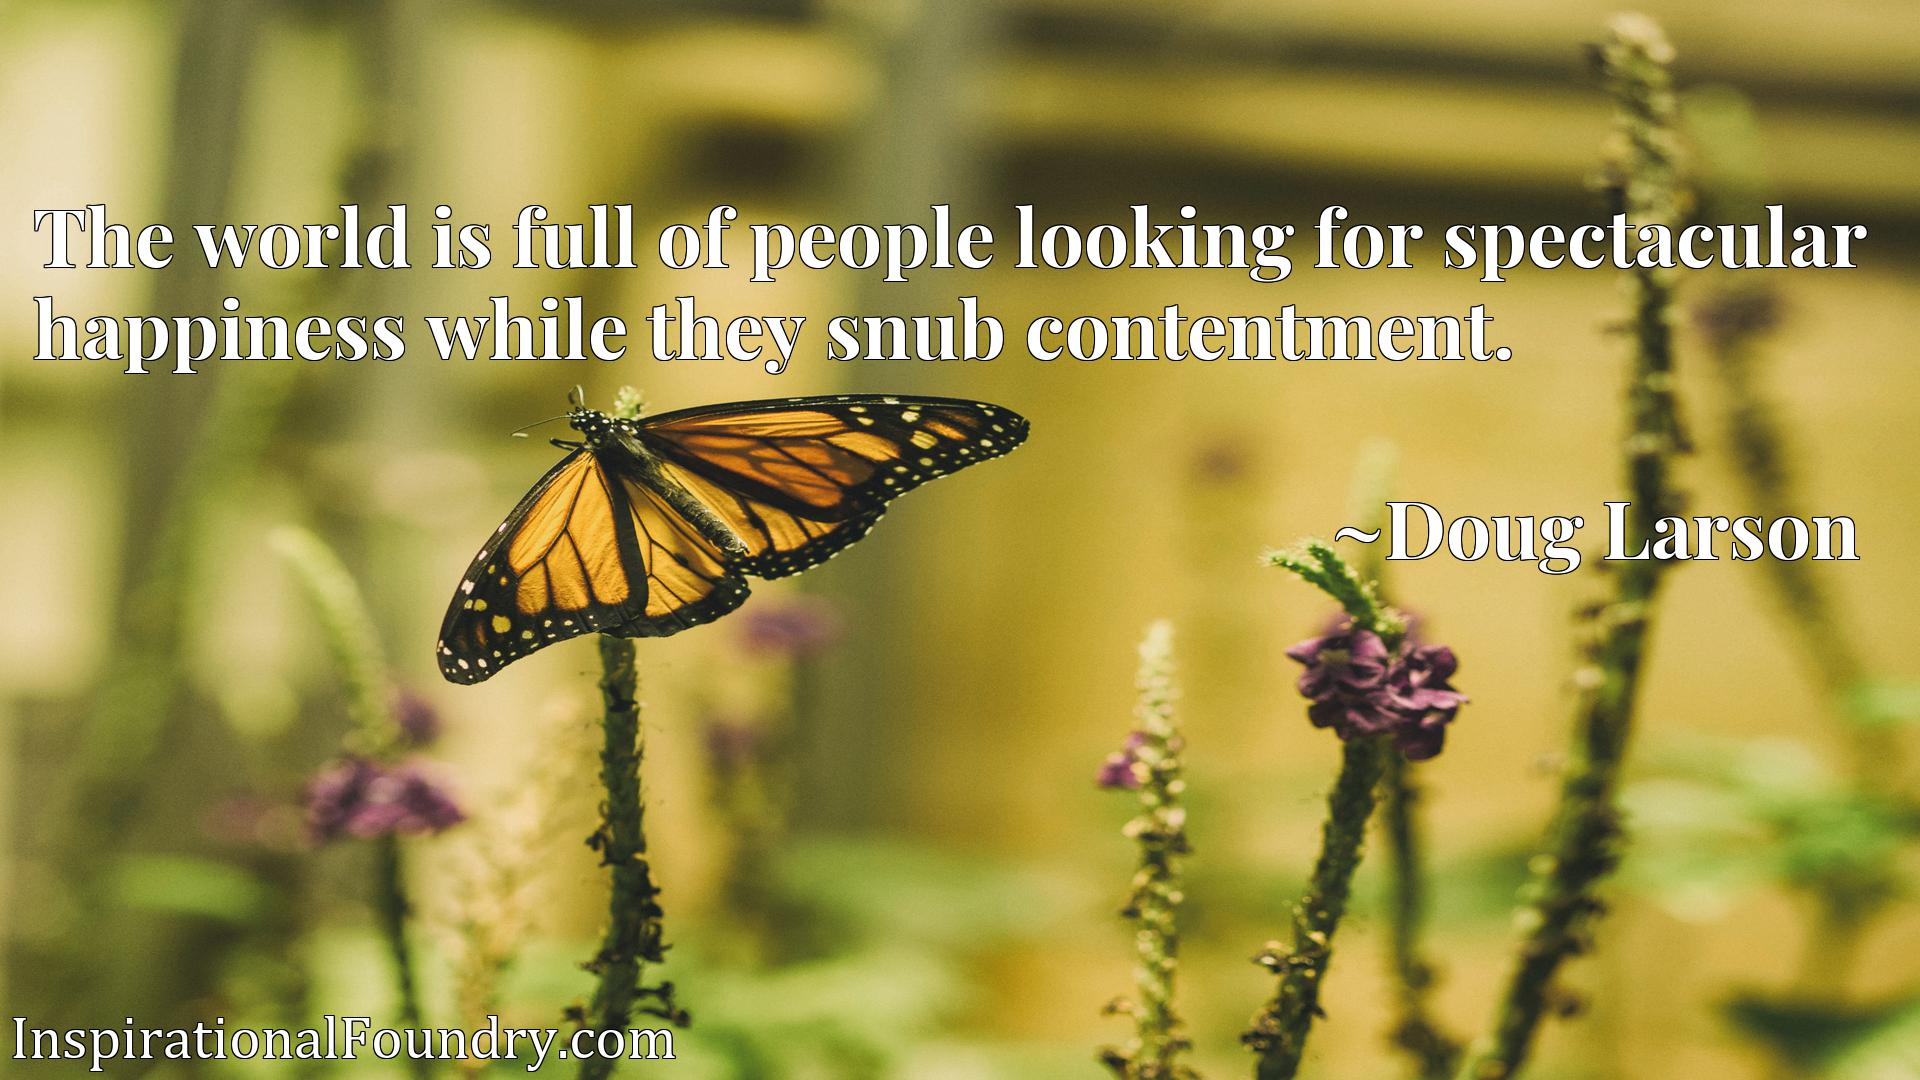 The world is full of people looking for spectacular happiness while they snub contentment.